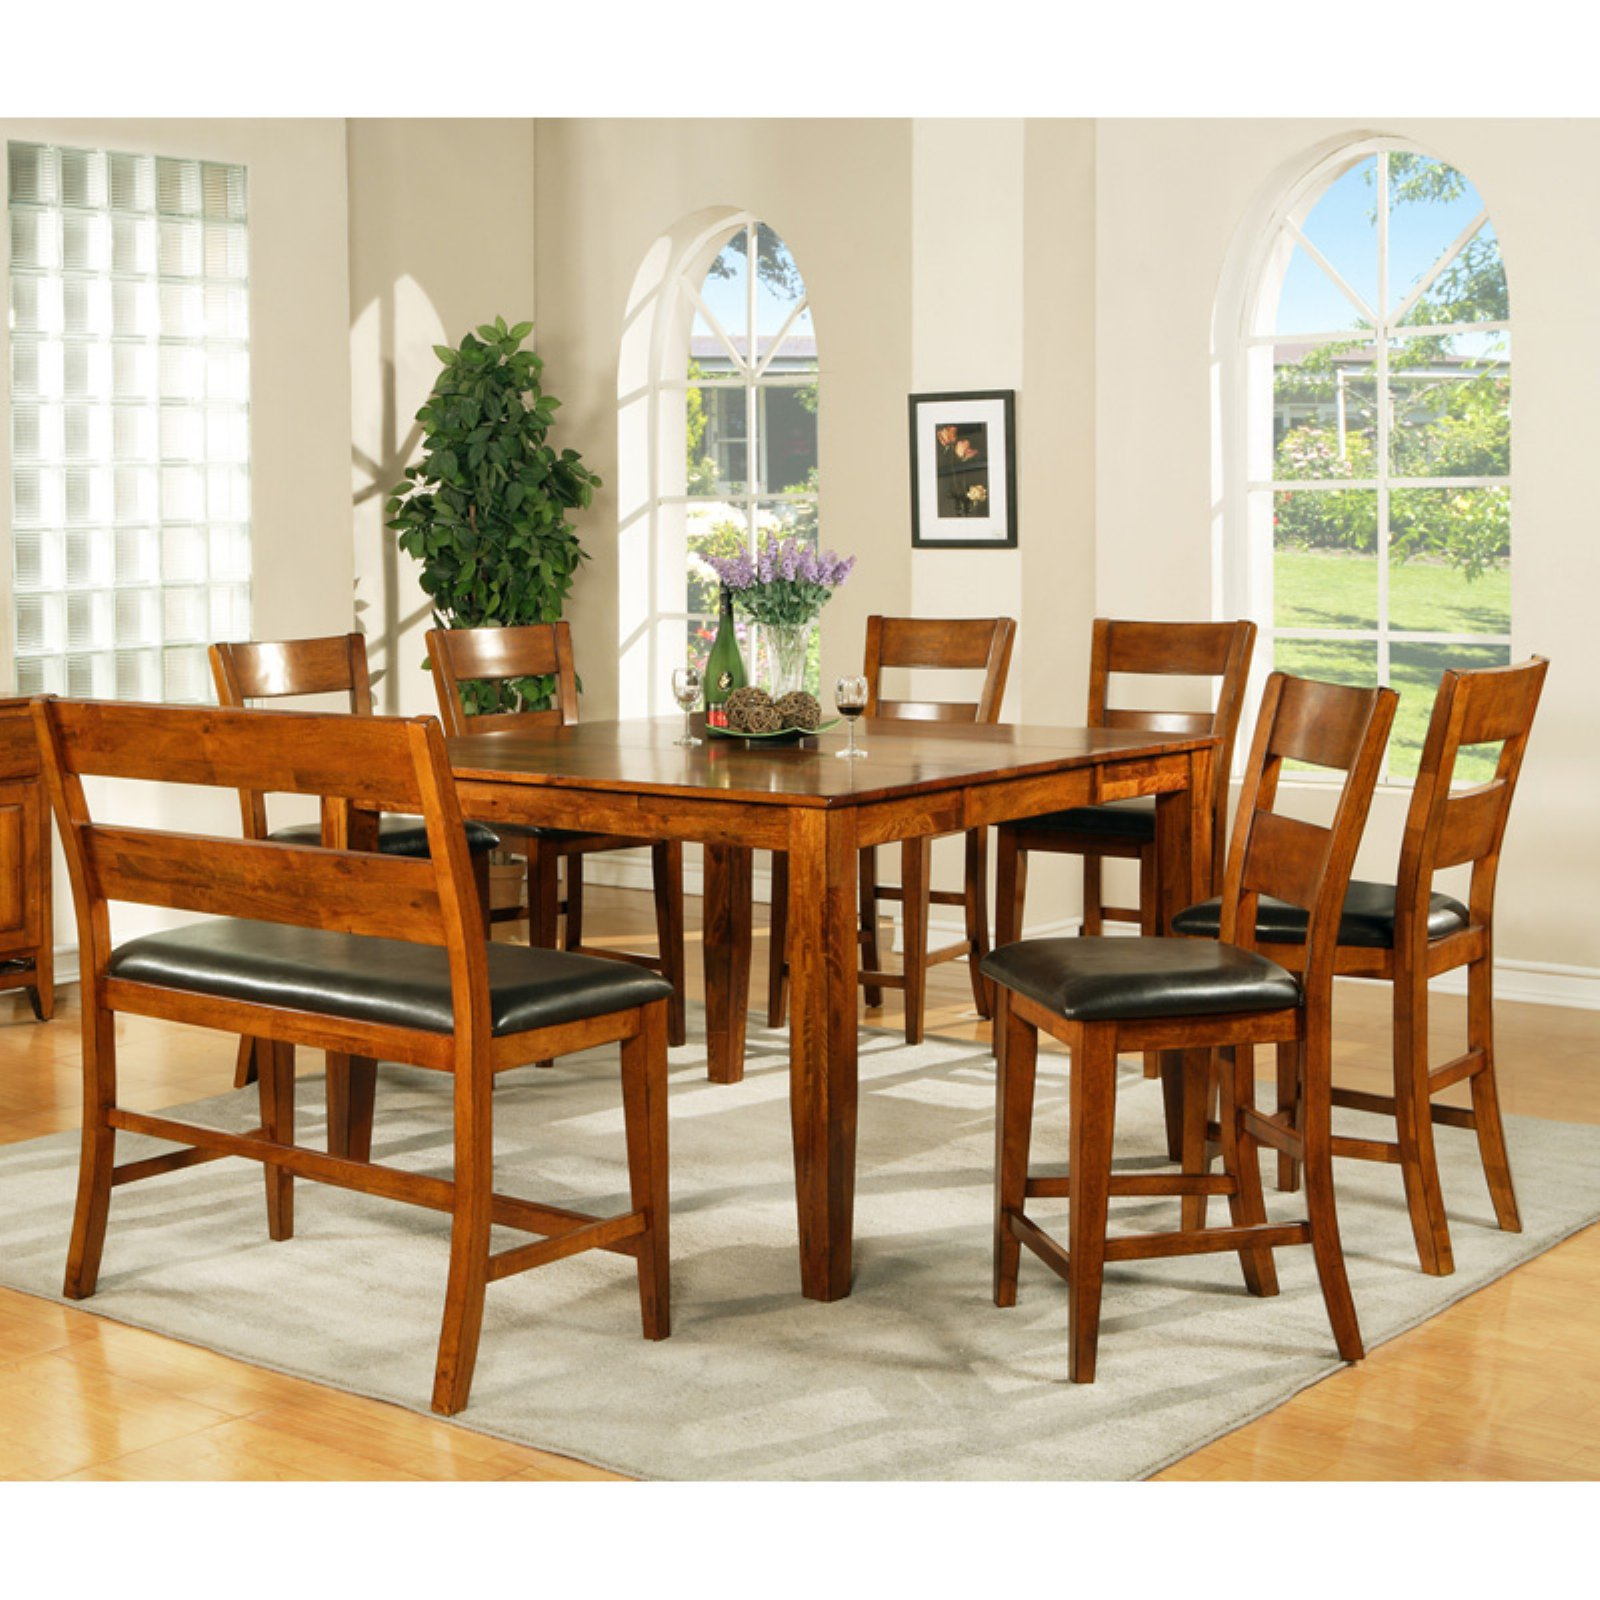 Steve Silver Mango Counter Height 8-Piece Dining Table Set